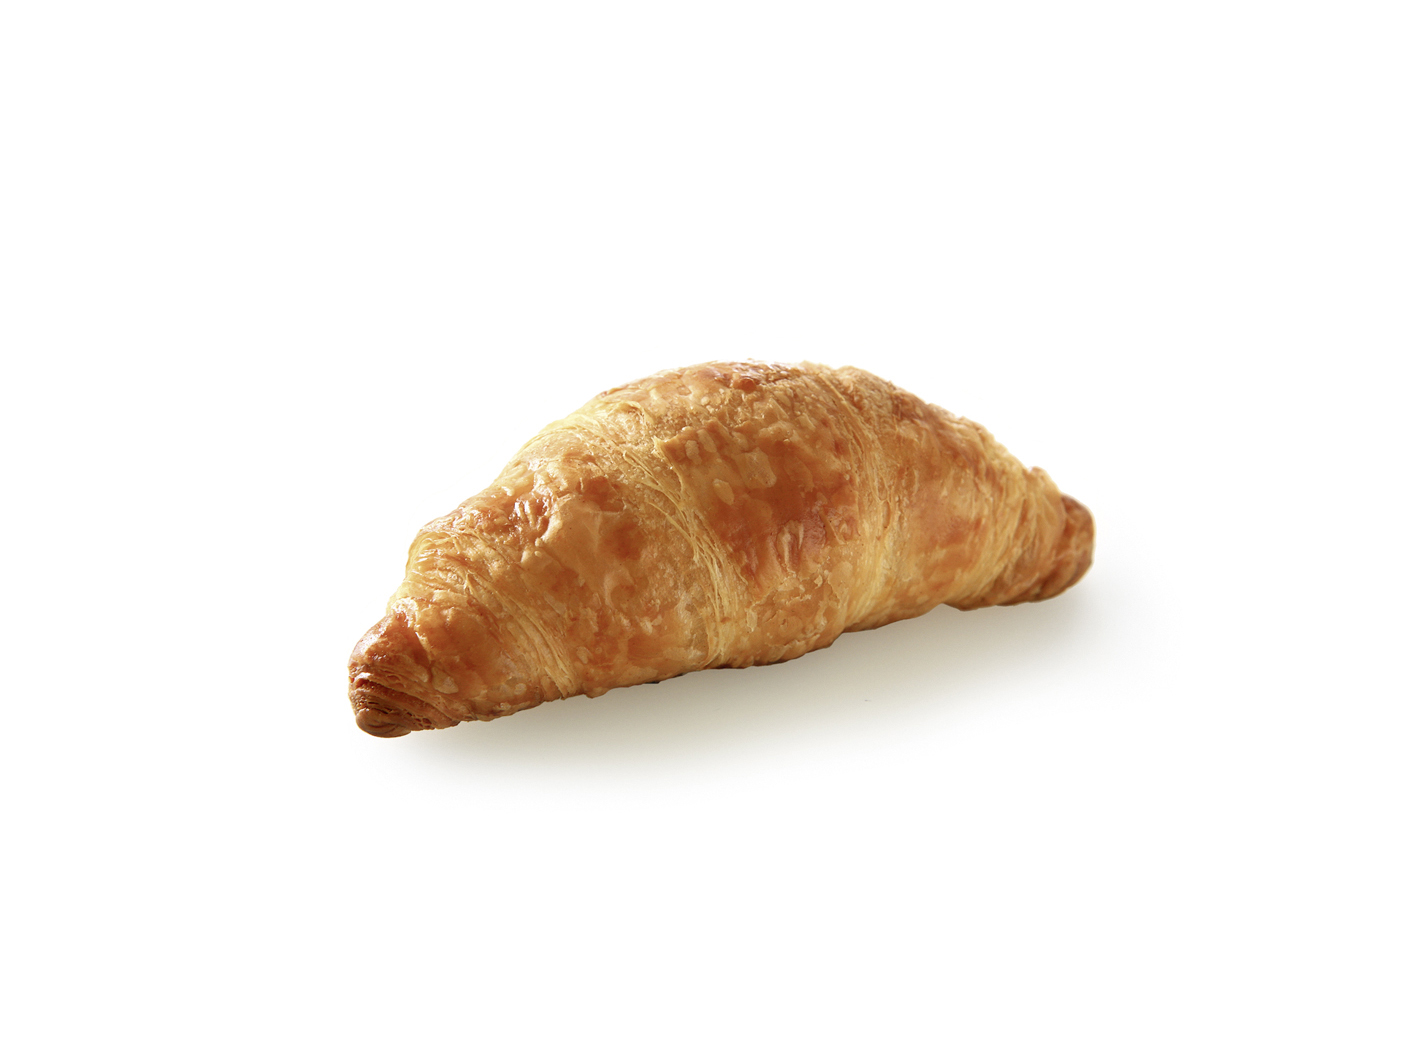 Mini butter croissant - Dough pastry with 22% butter